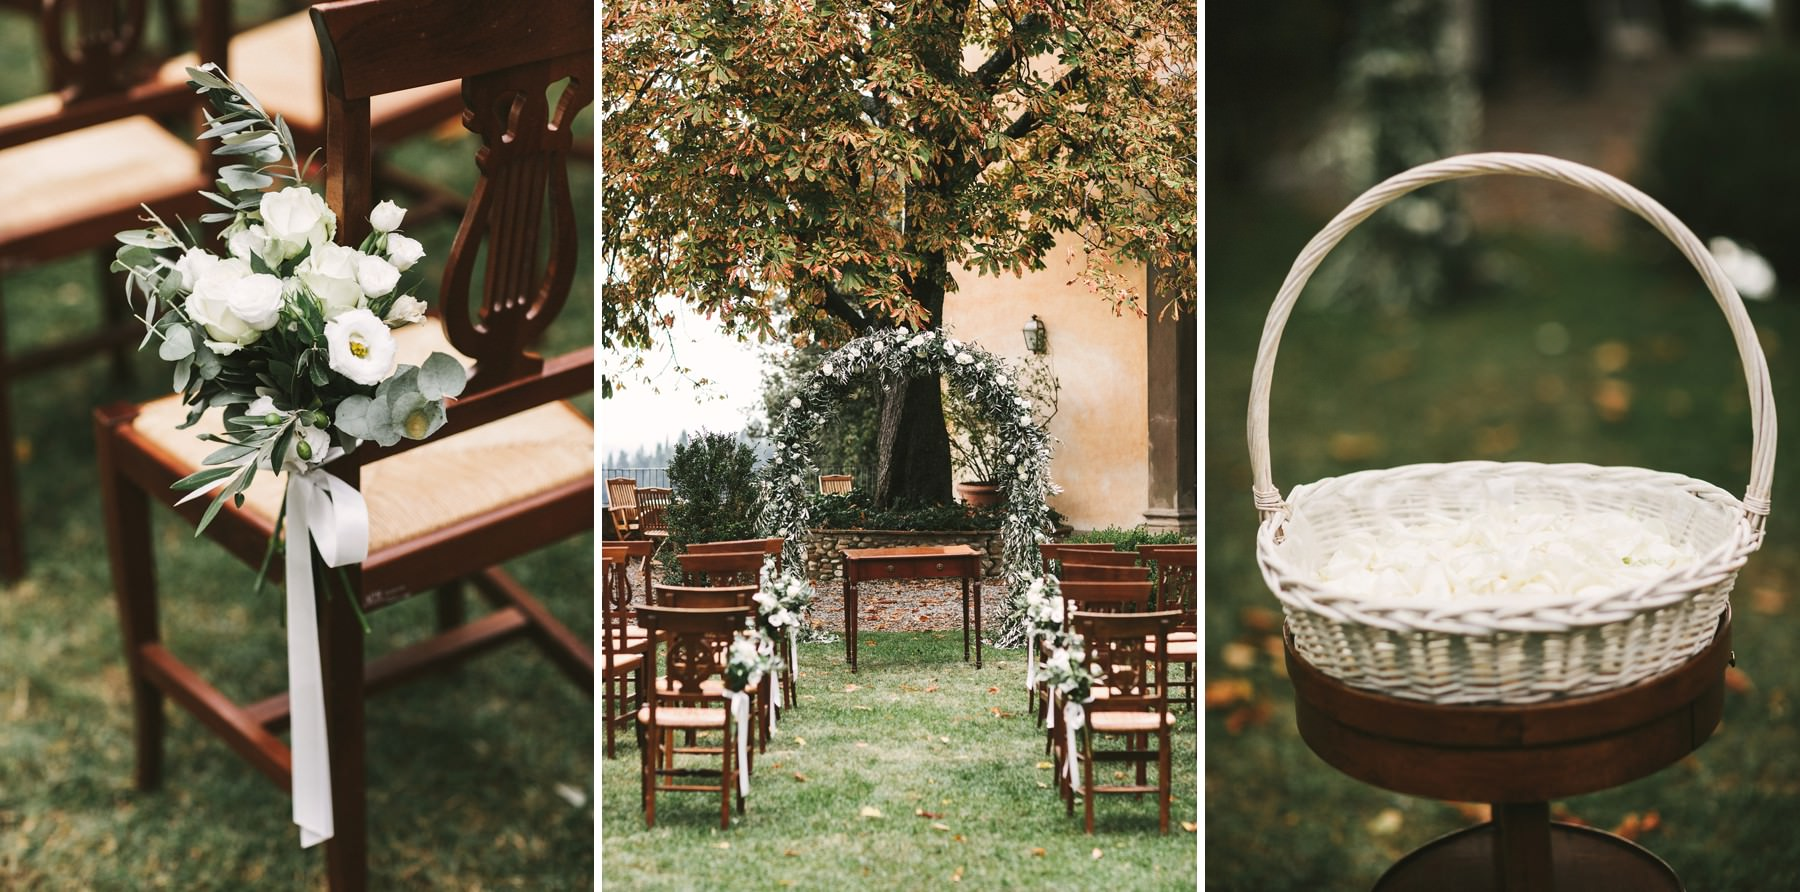 A classy and poetic wedding in Tuscany at Villa Il Poggiale? A dream coming true!